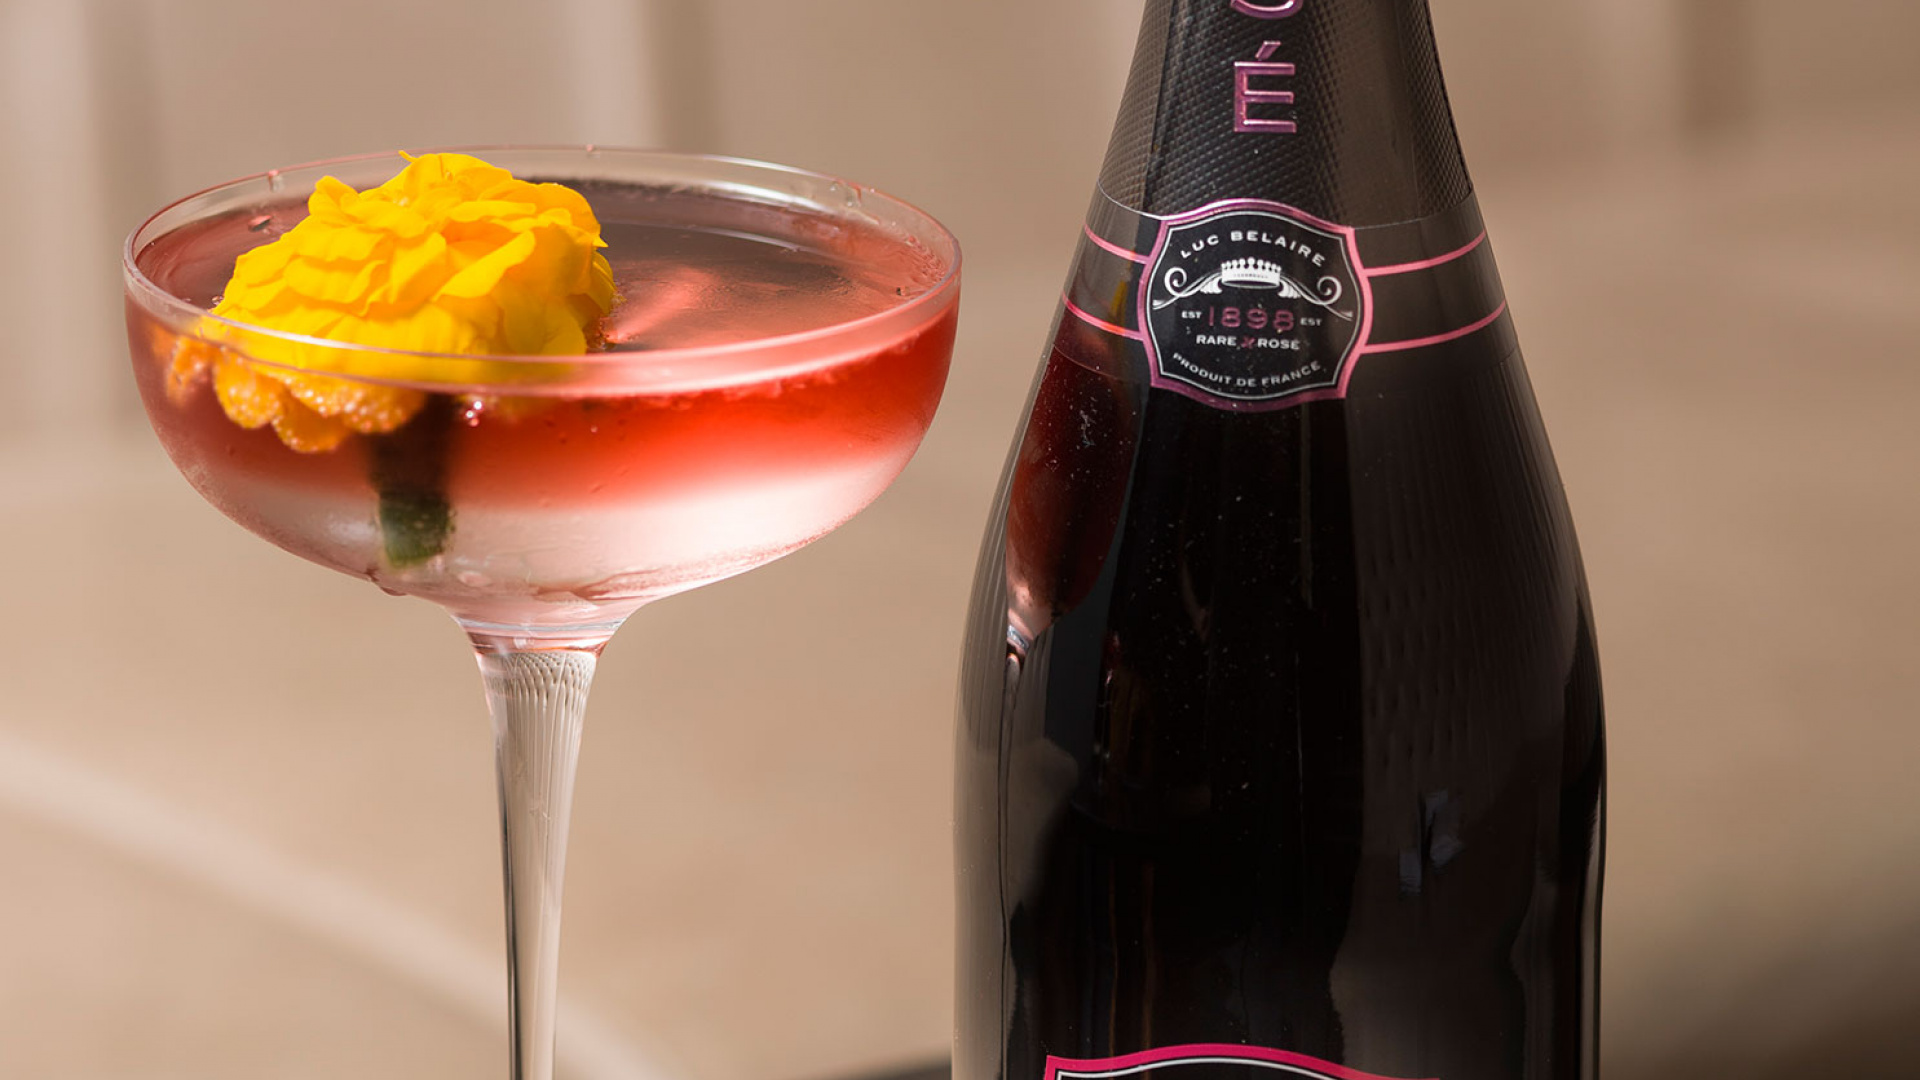 A recipe for Belaire's Twinkle cocktail